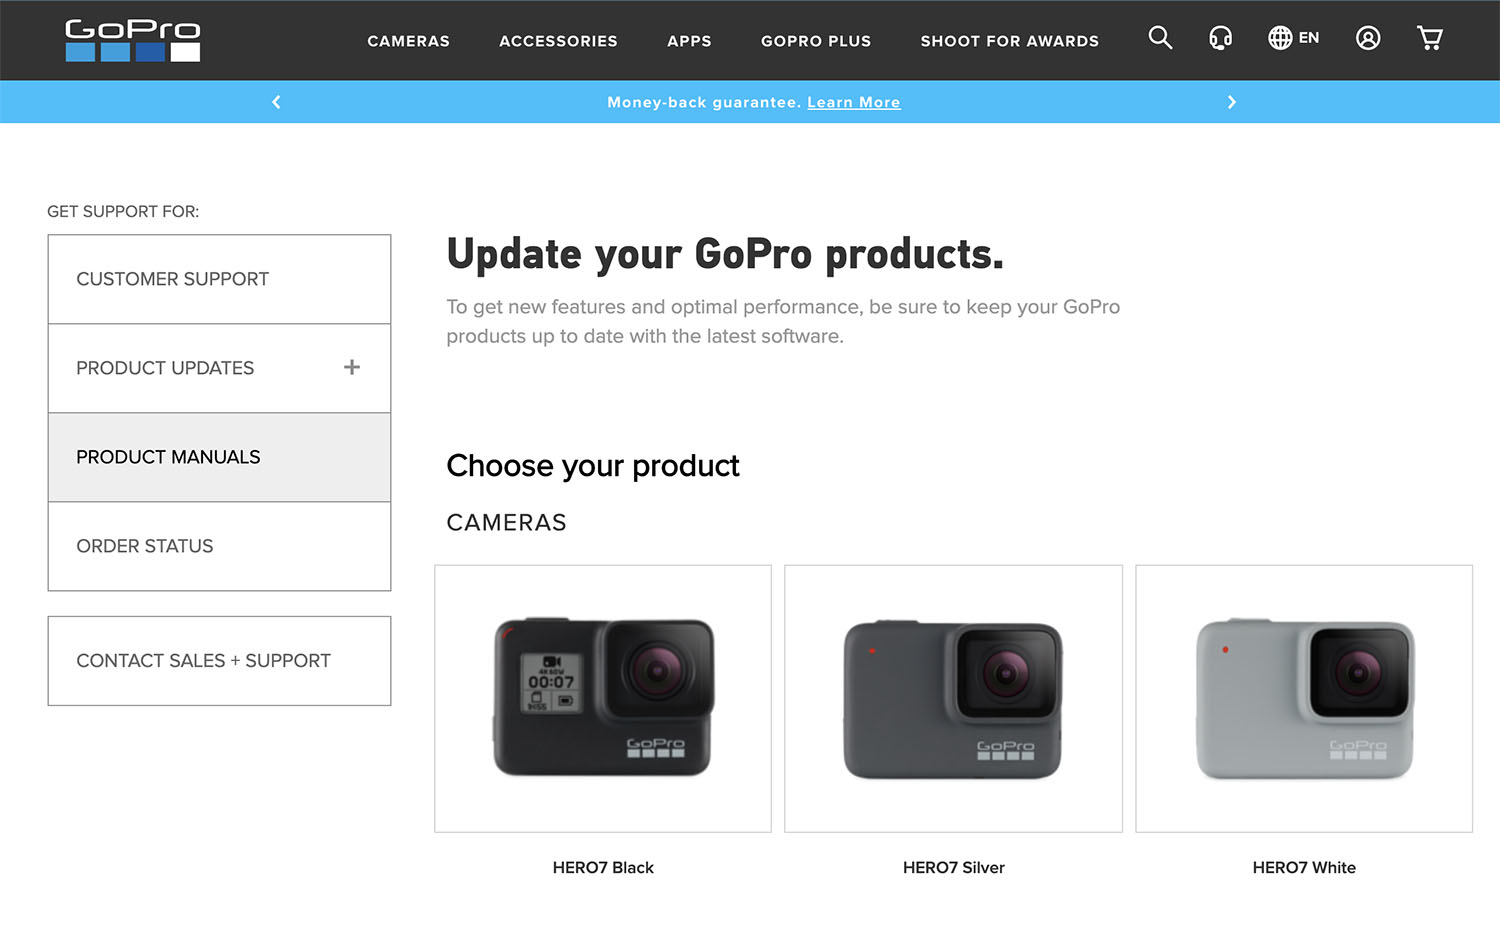 Select your HERO7 GoPro Product